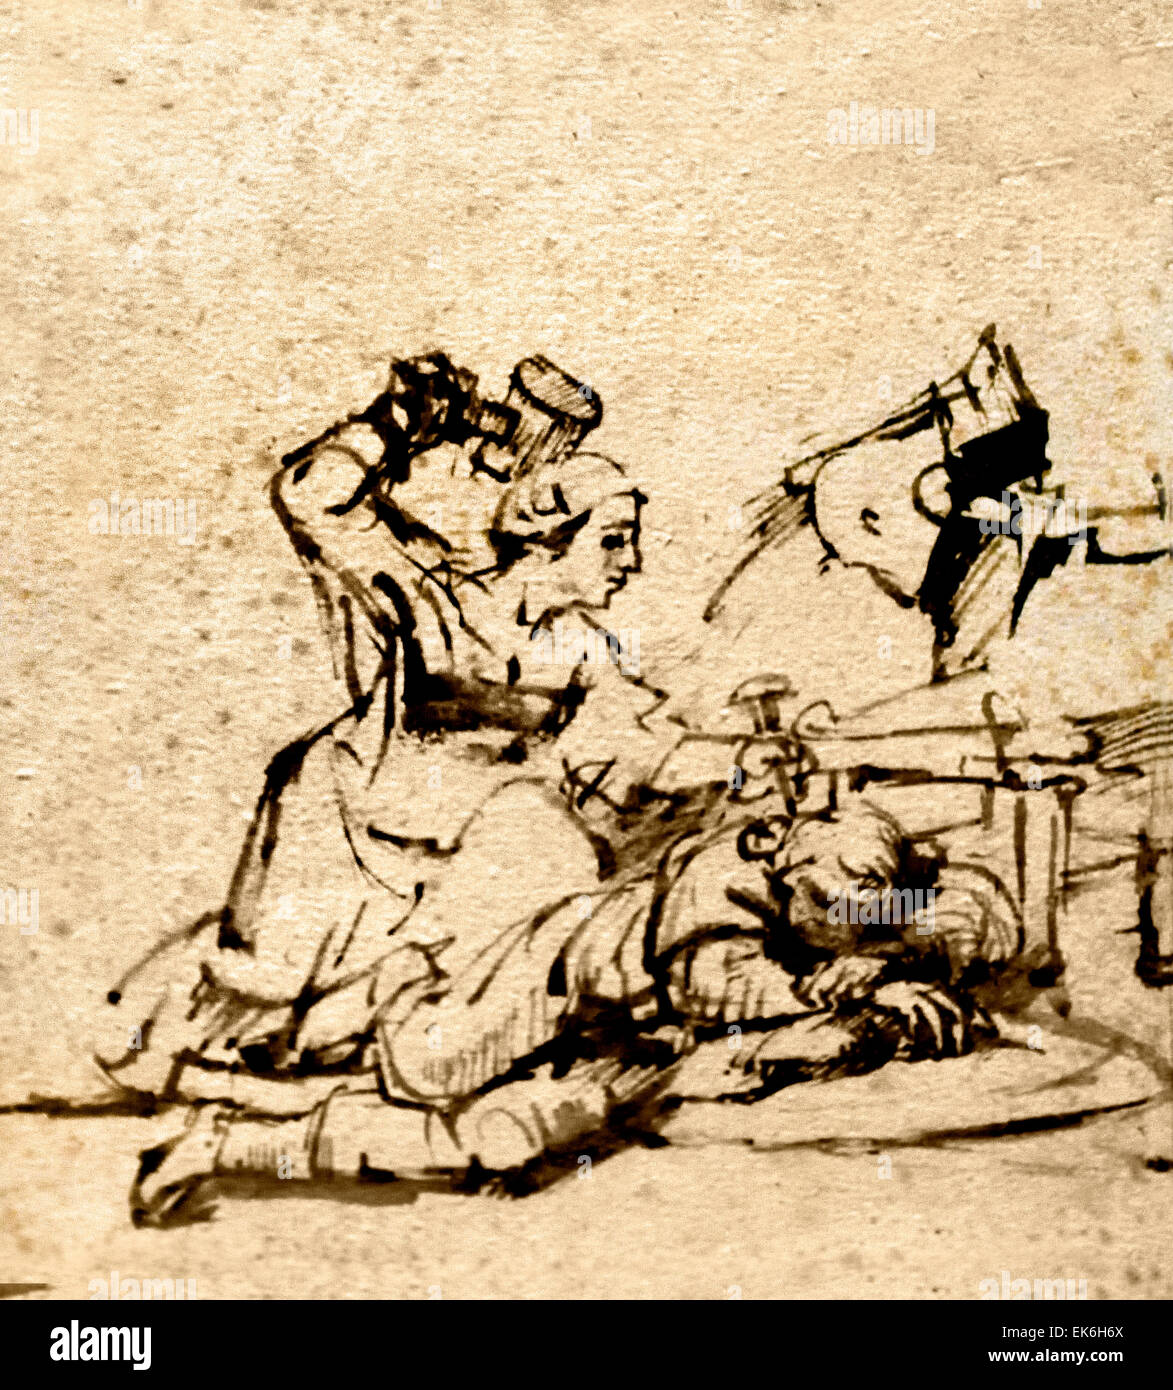 Jael Killing Sisera 1657 Rembrandt Harmenszoon van Rijn1606–1669 Dutch  Netherlands ( pen and brown ink )